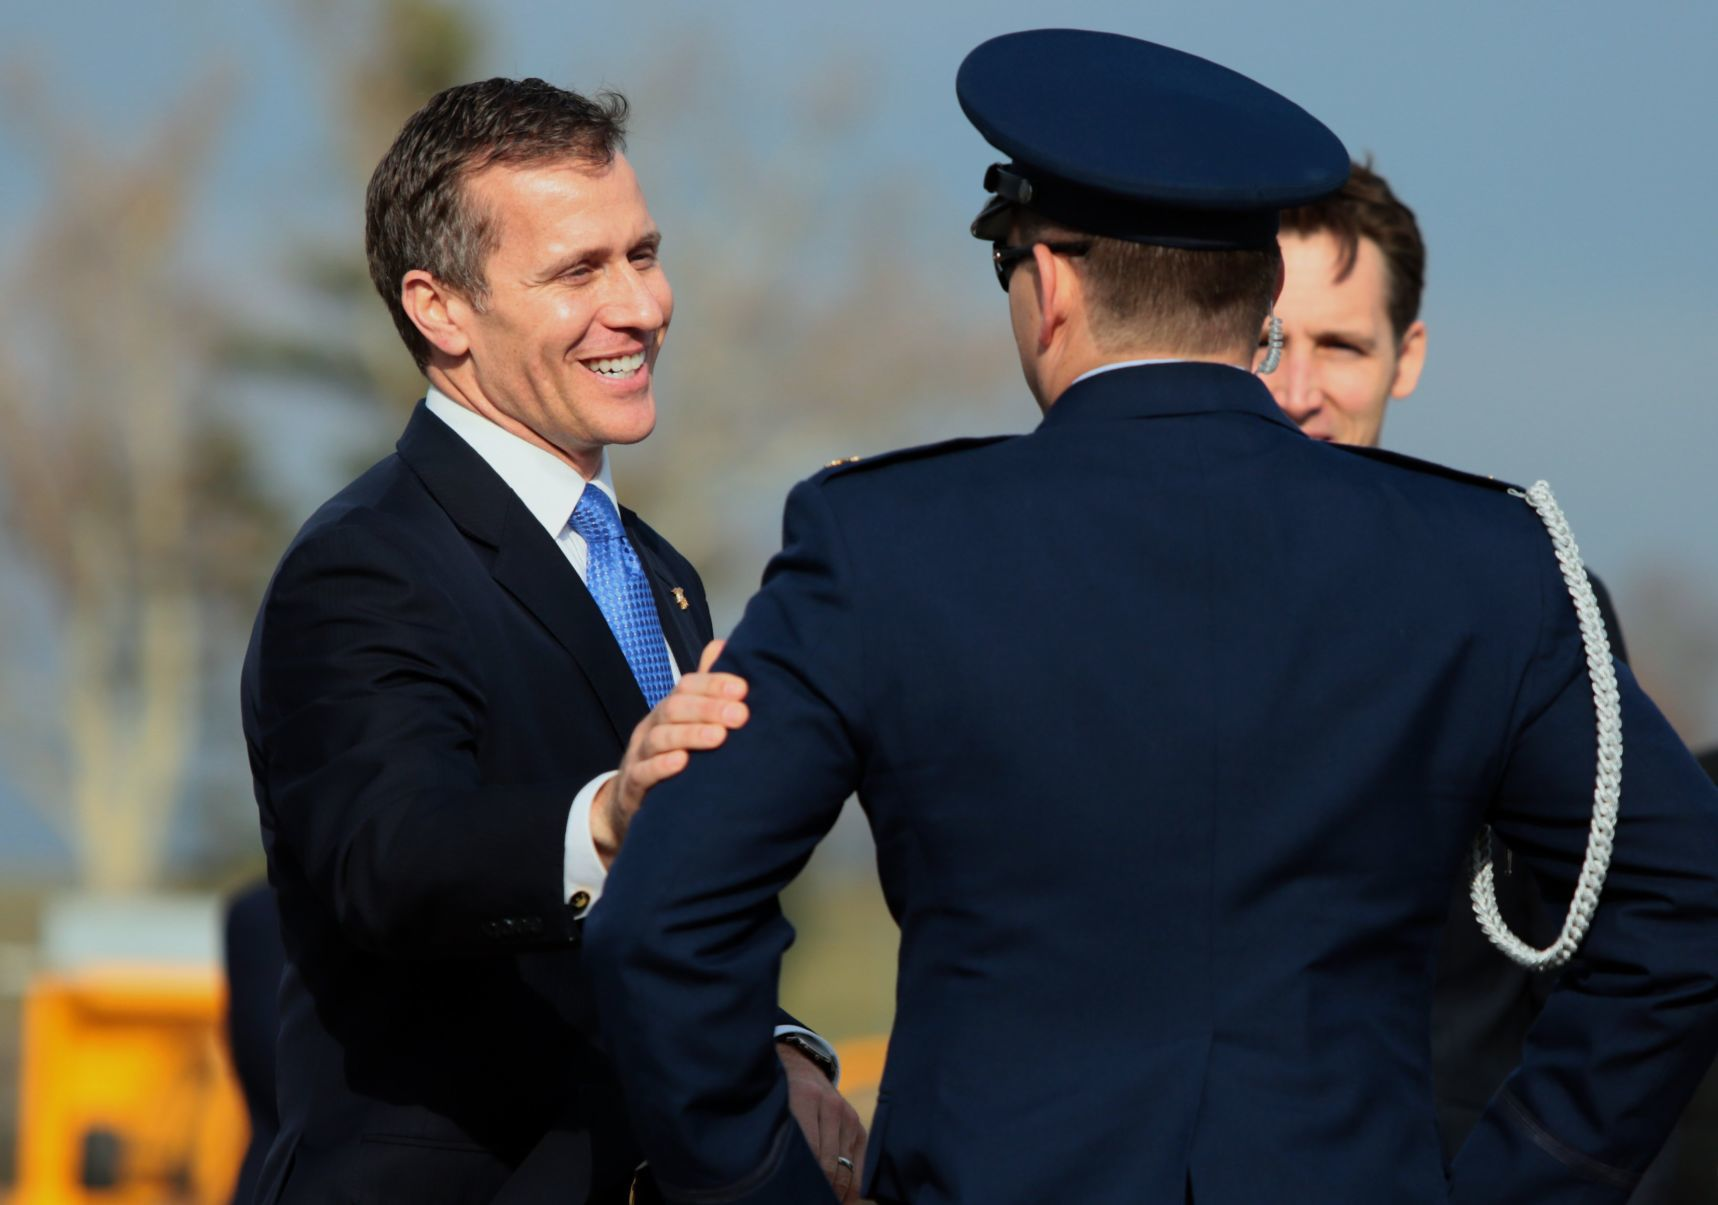 Greitens Hawley on hand for Trump visit